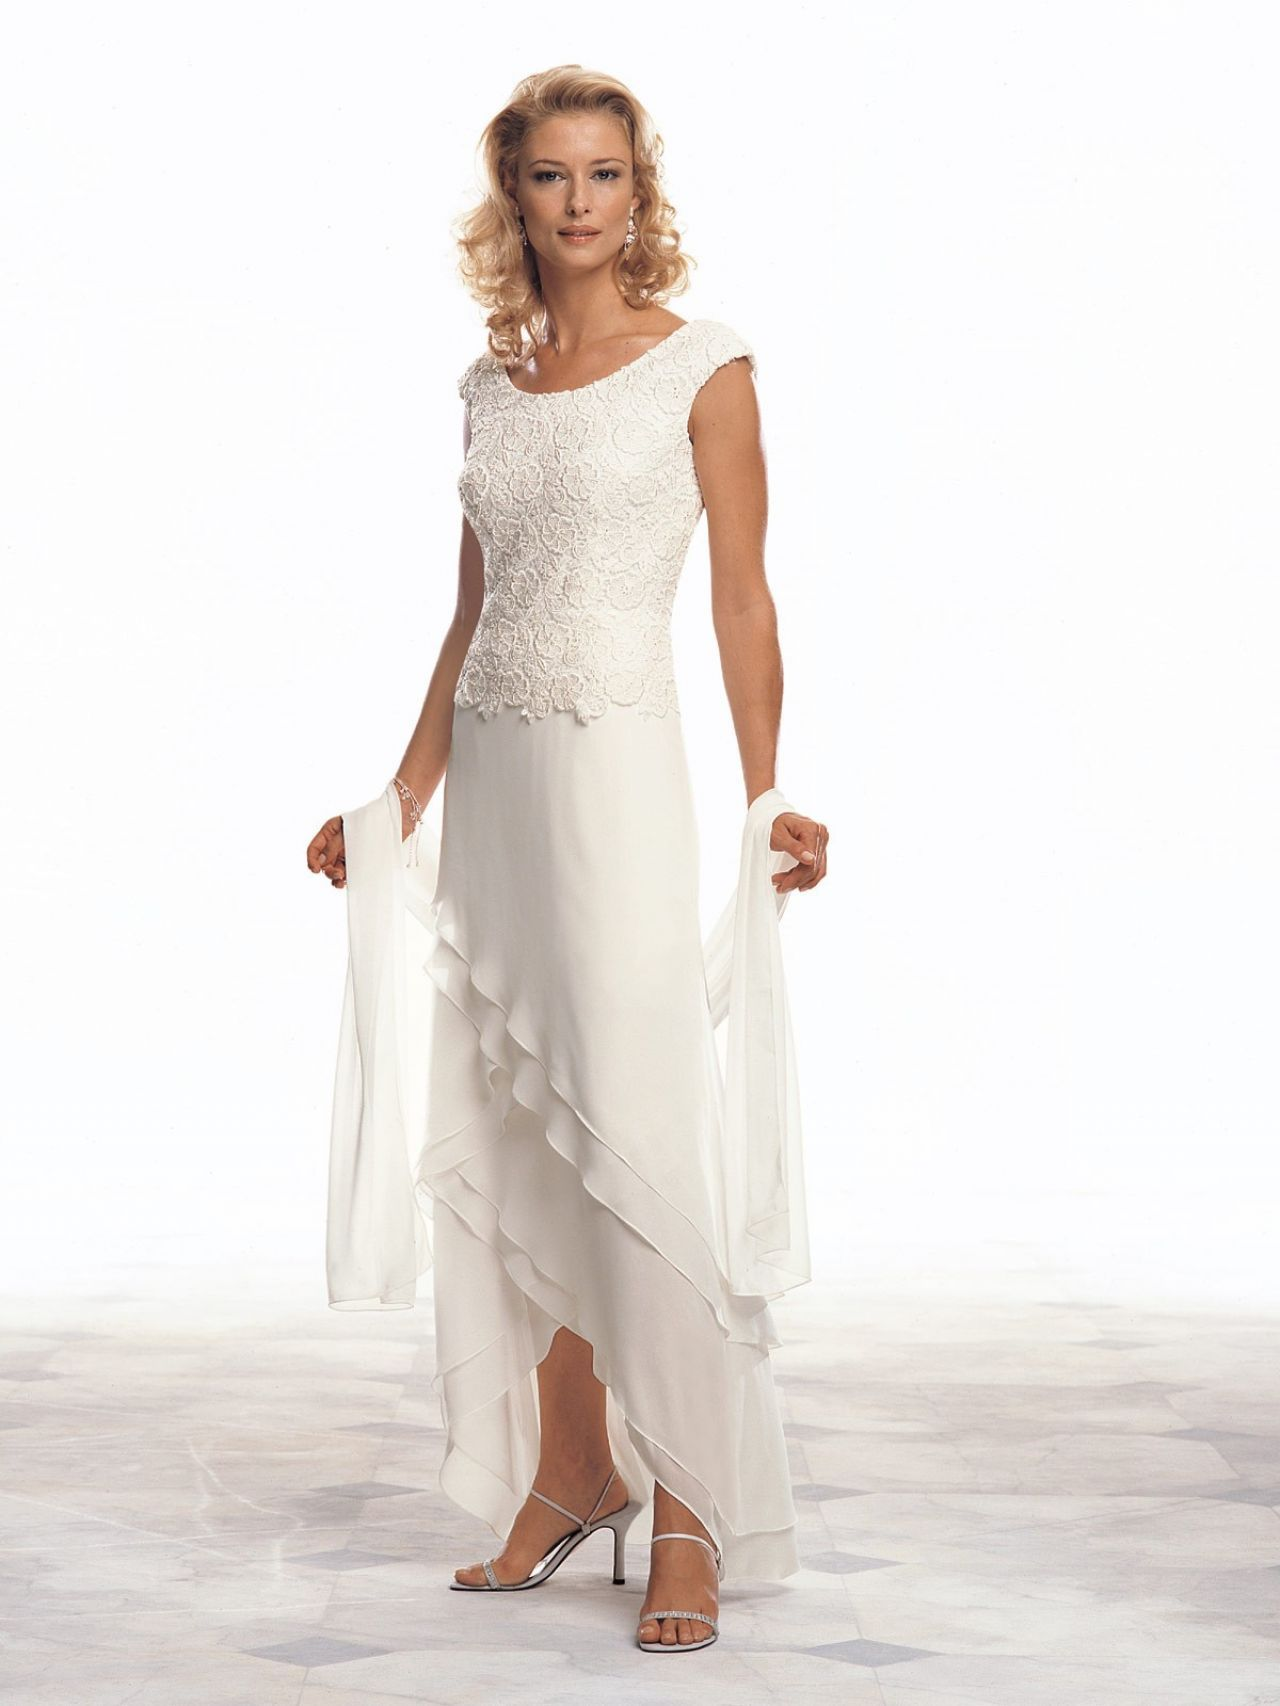 Wedding Guest Dress Ideas Mother Of The Bride Dress Ideas Over 50 Fashion Womens Fashion Over 50 S Mother Of The Bride Dresses Fashion Lace Shift Dress